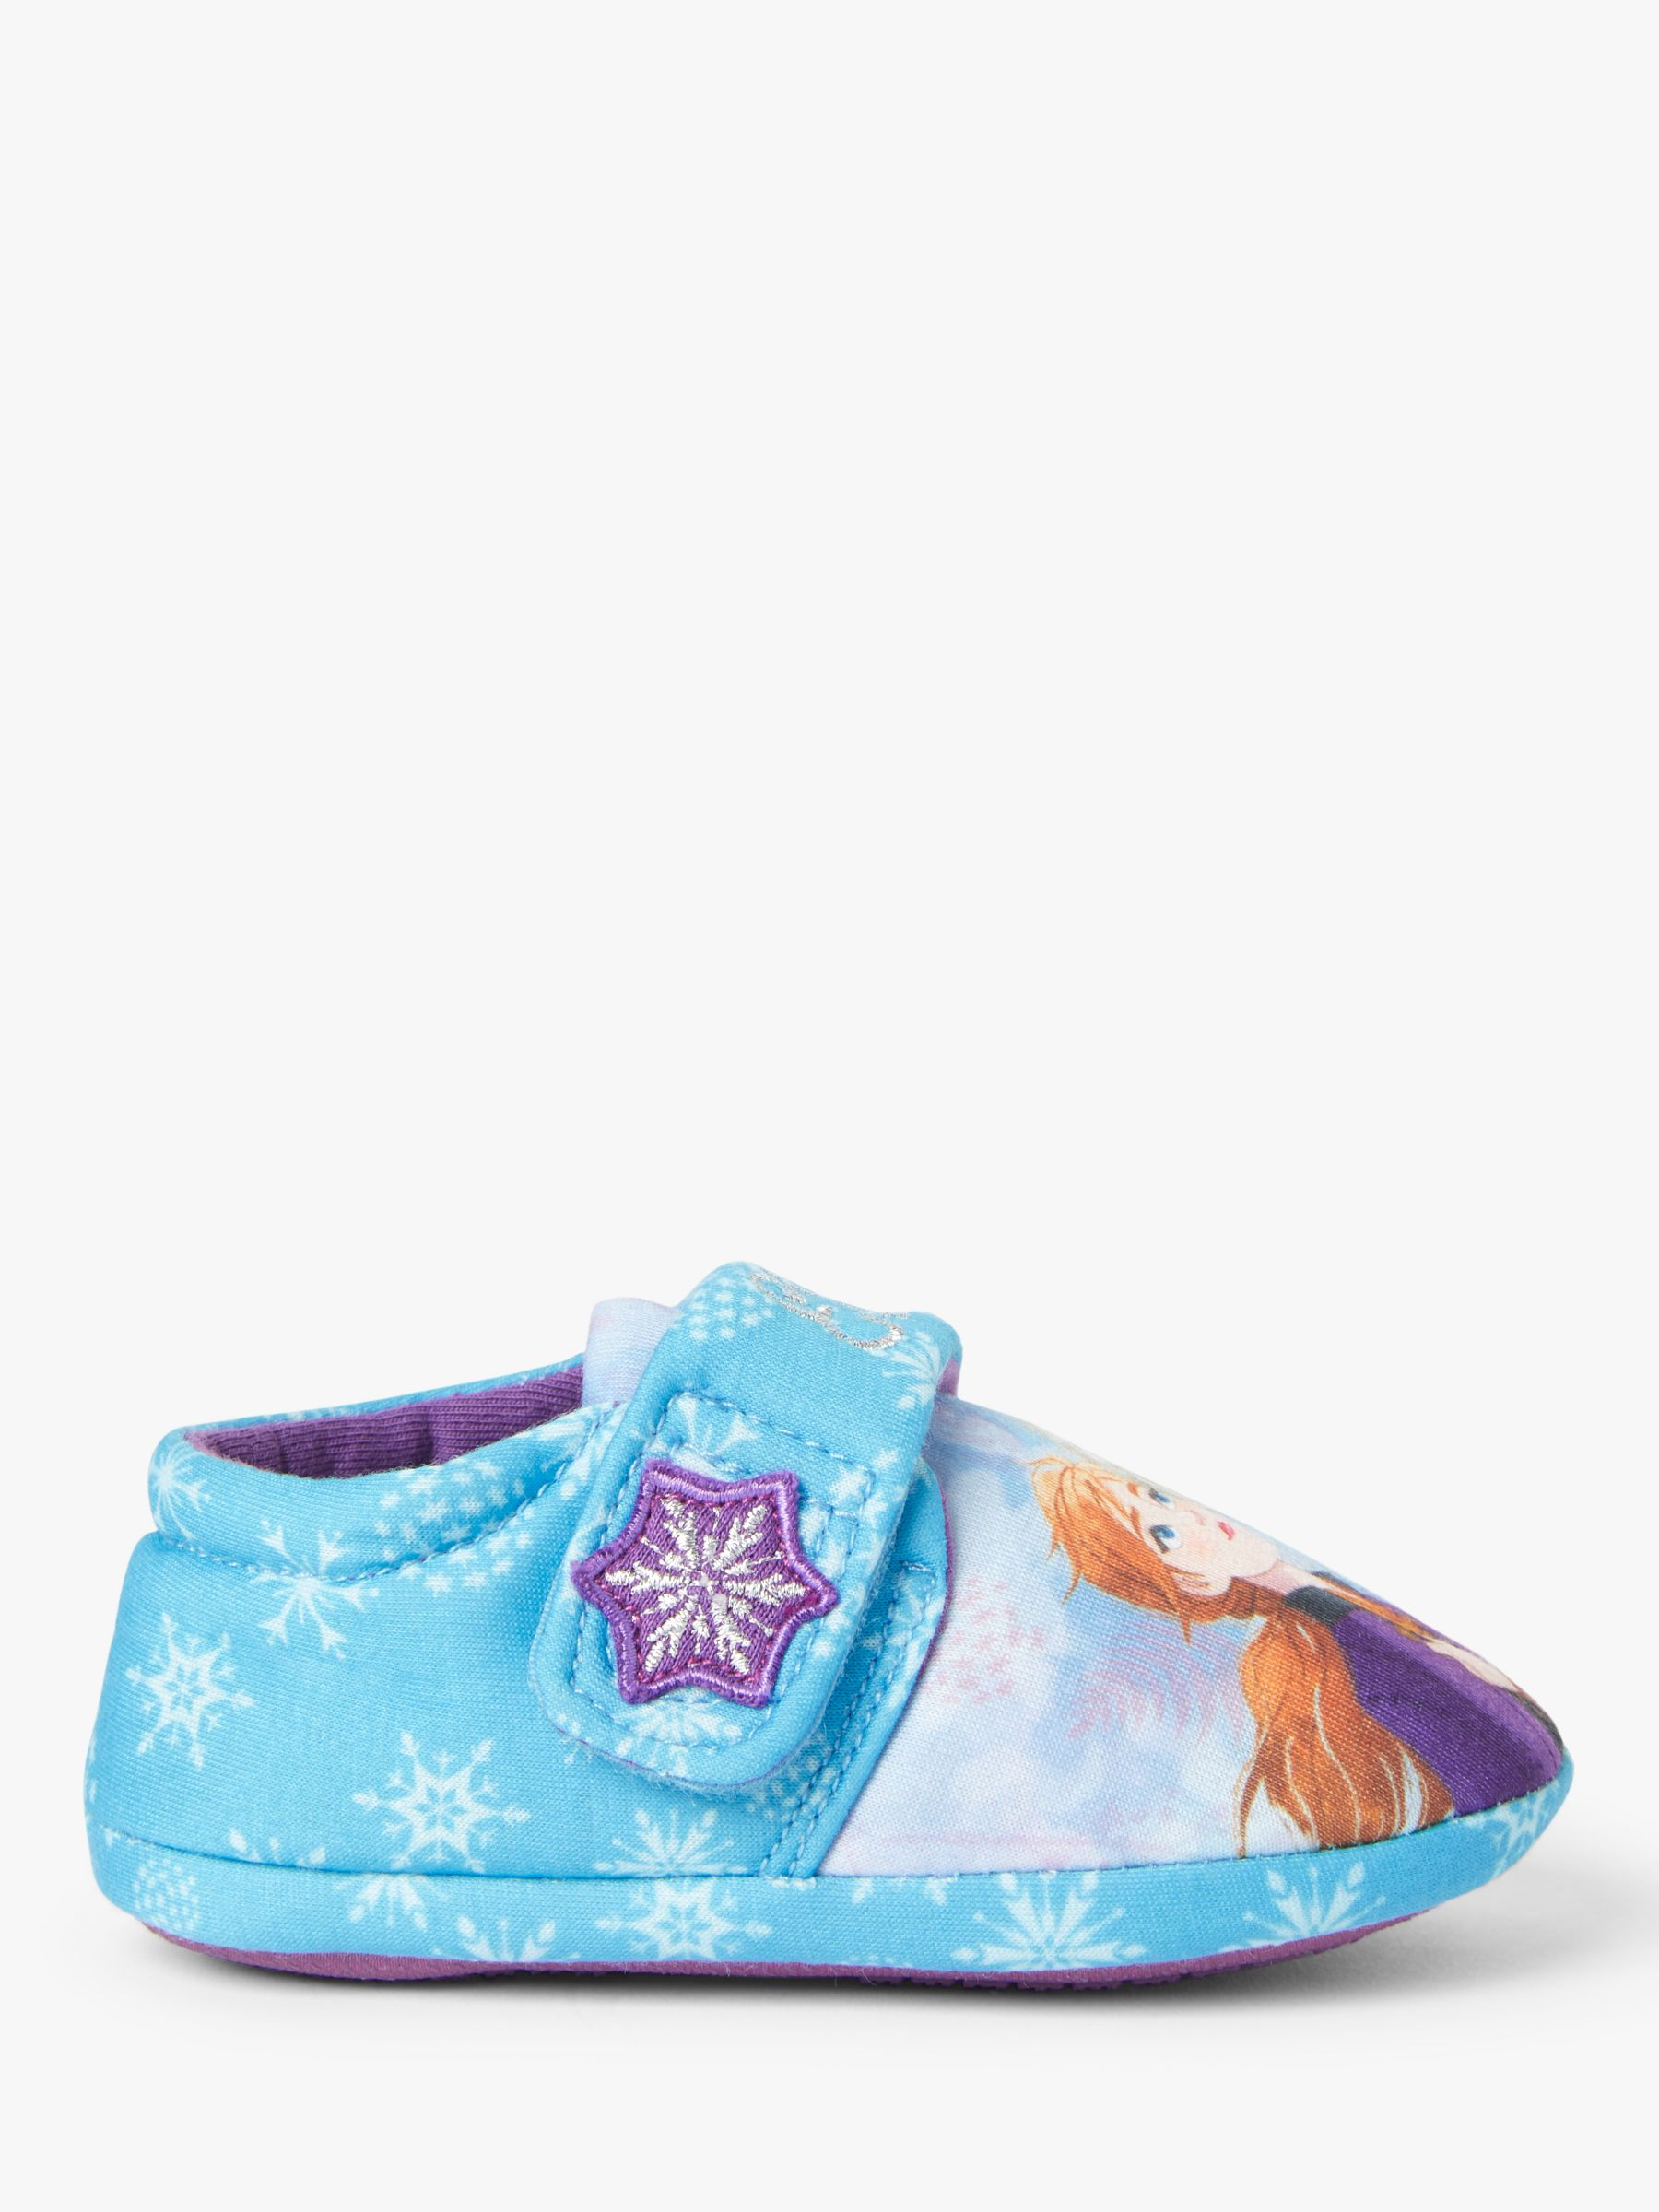 Peppa Pig Disney Frozen II Children's Slippers, Blue